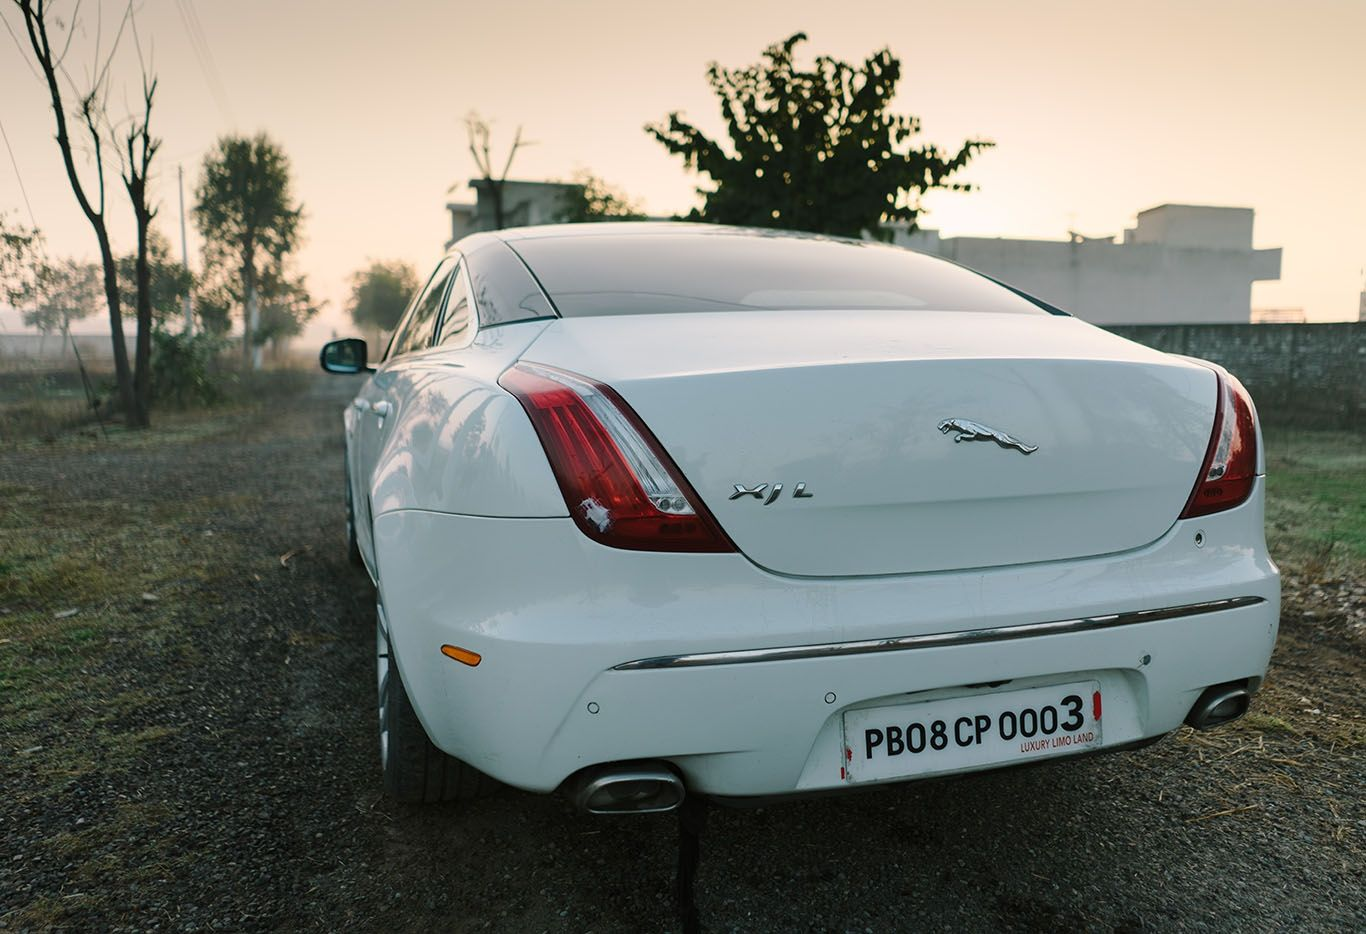 Best Luxury Car Jaguar Xjl In Punjab And Other Major Cities Of Punjab We Provide You Best Car Rentals Luxury Car Rental Best Luxury Cars Cheap Luxury Cars